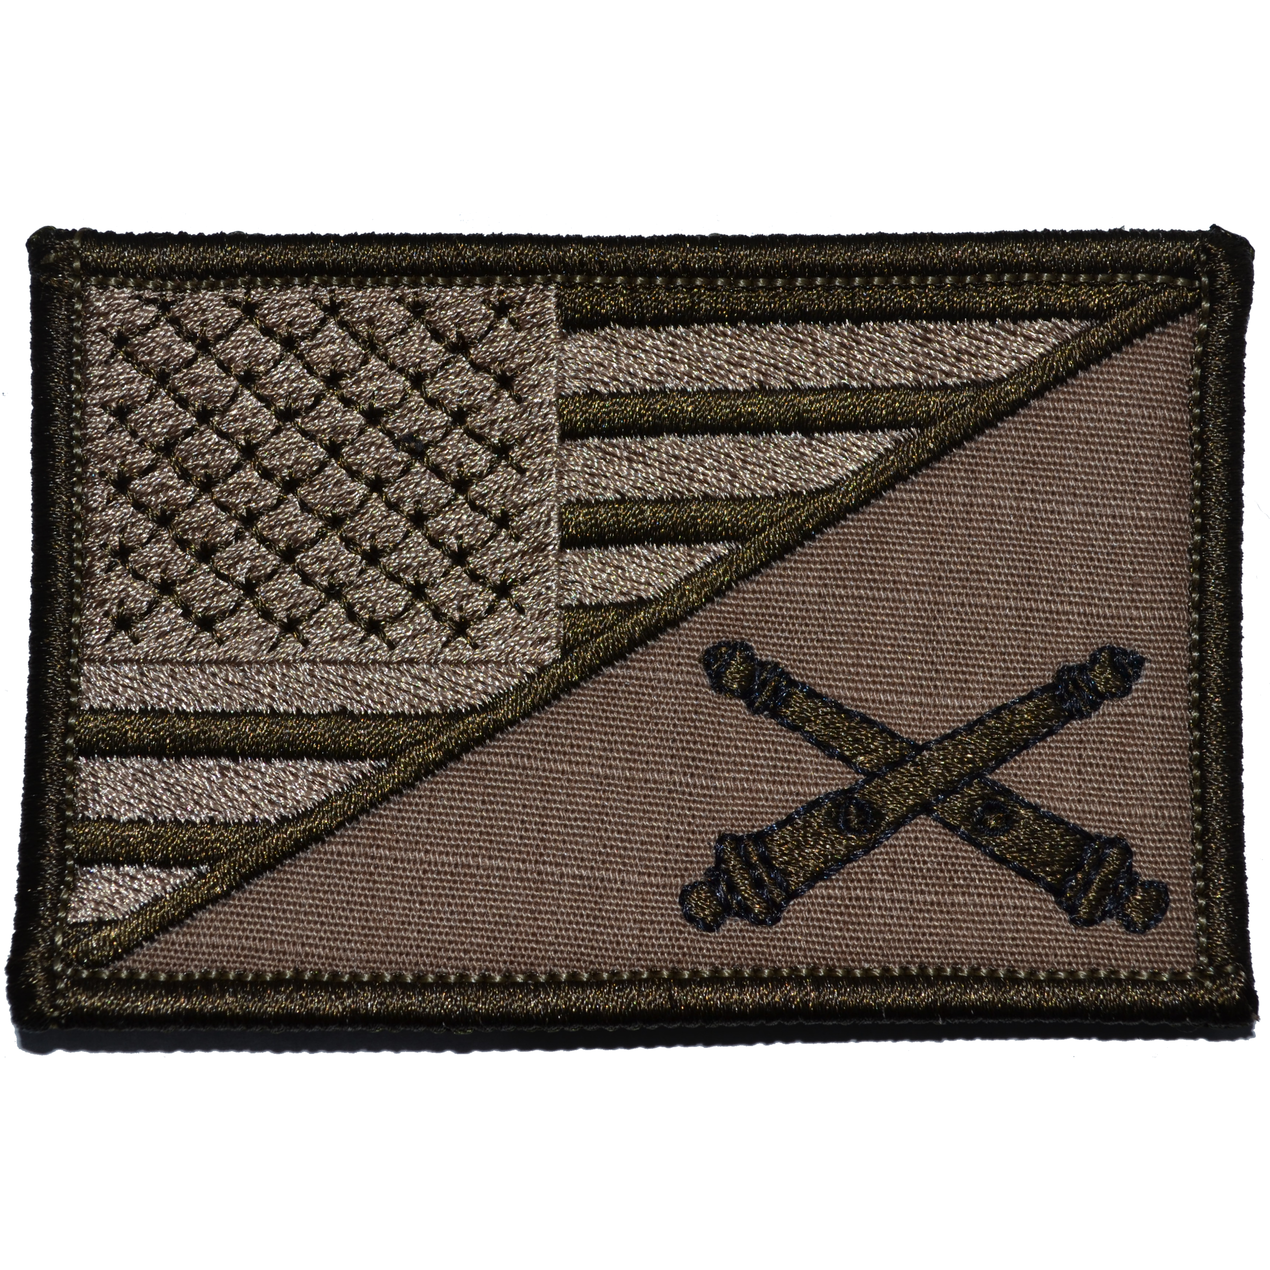 Field Artillery Cannoneer USA Flag - 2.25x3.5 Patch